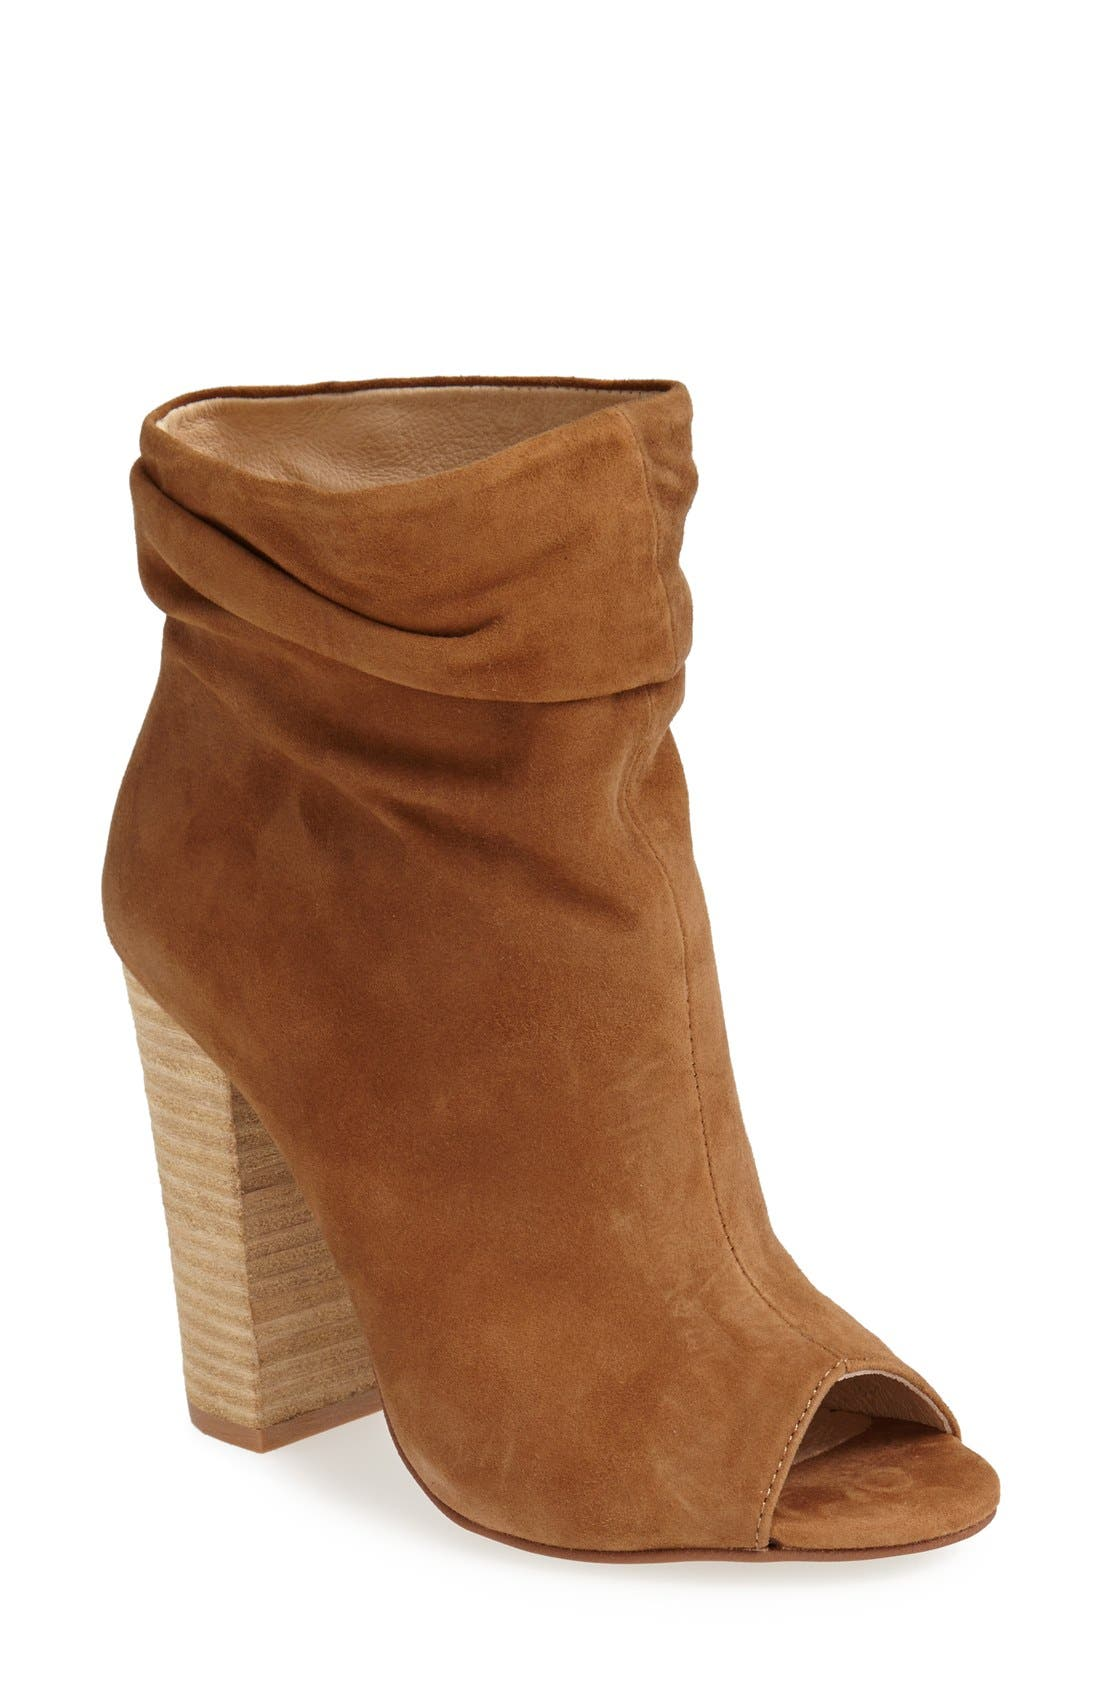 'Laurel' Peep Toe Bootie,                             Main thumbnail 5, color,